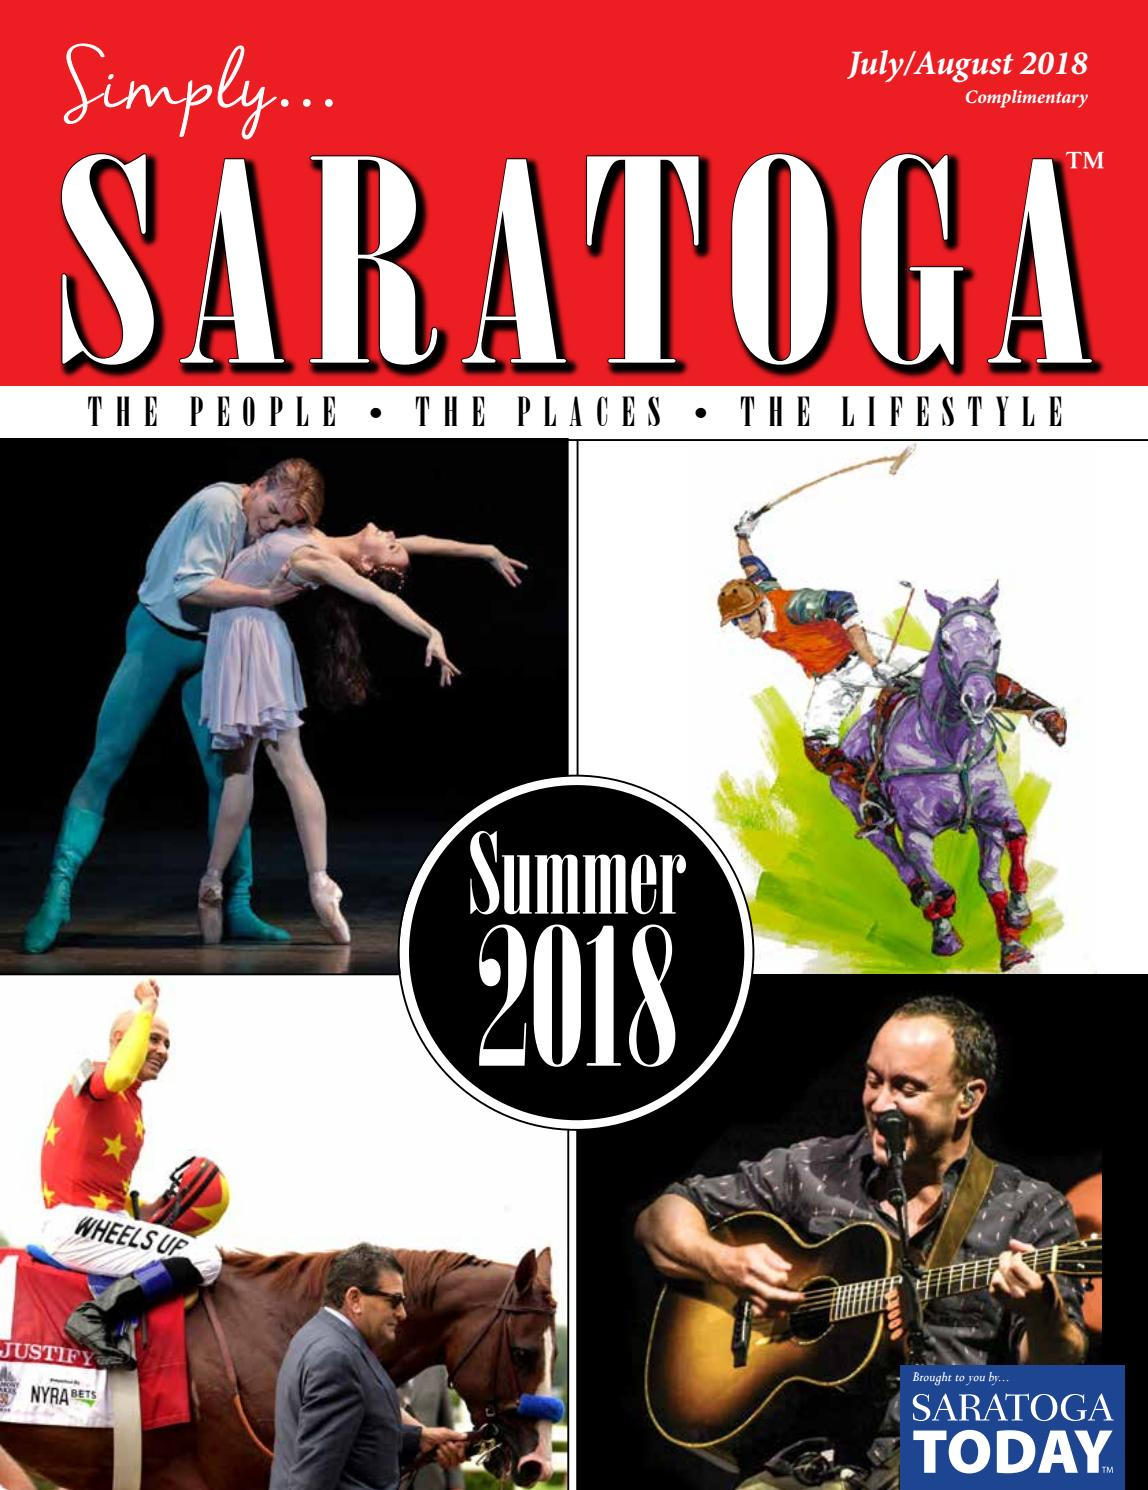 61e072795af2 Simply Saratoga Summer 2018 by Saratoga TODAY - issuu